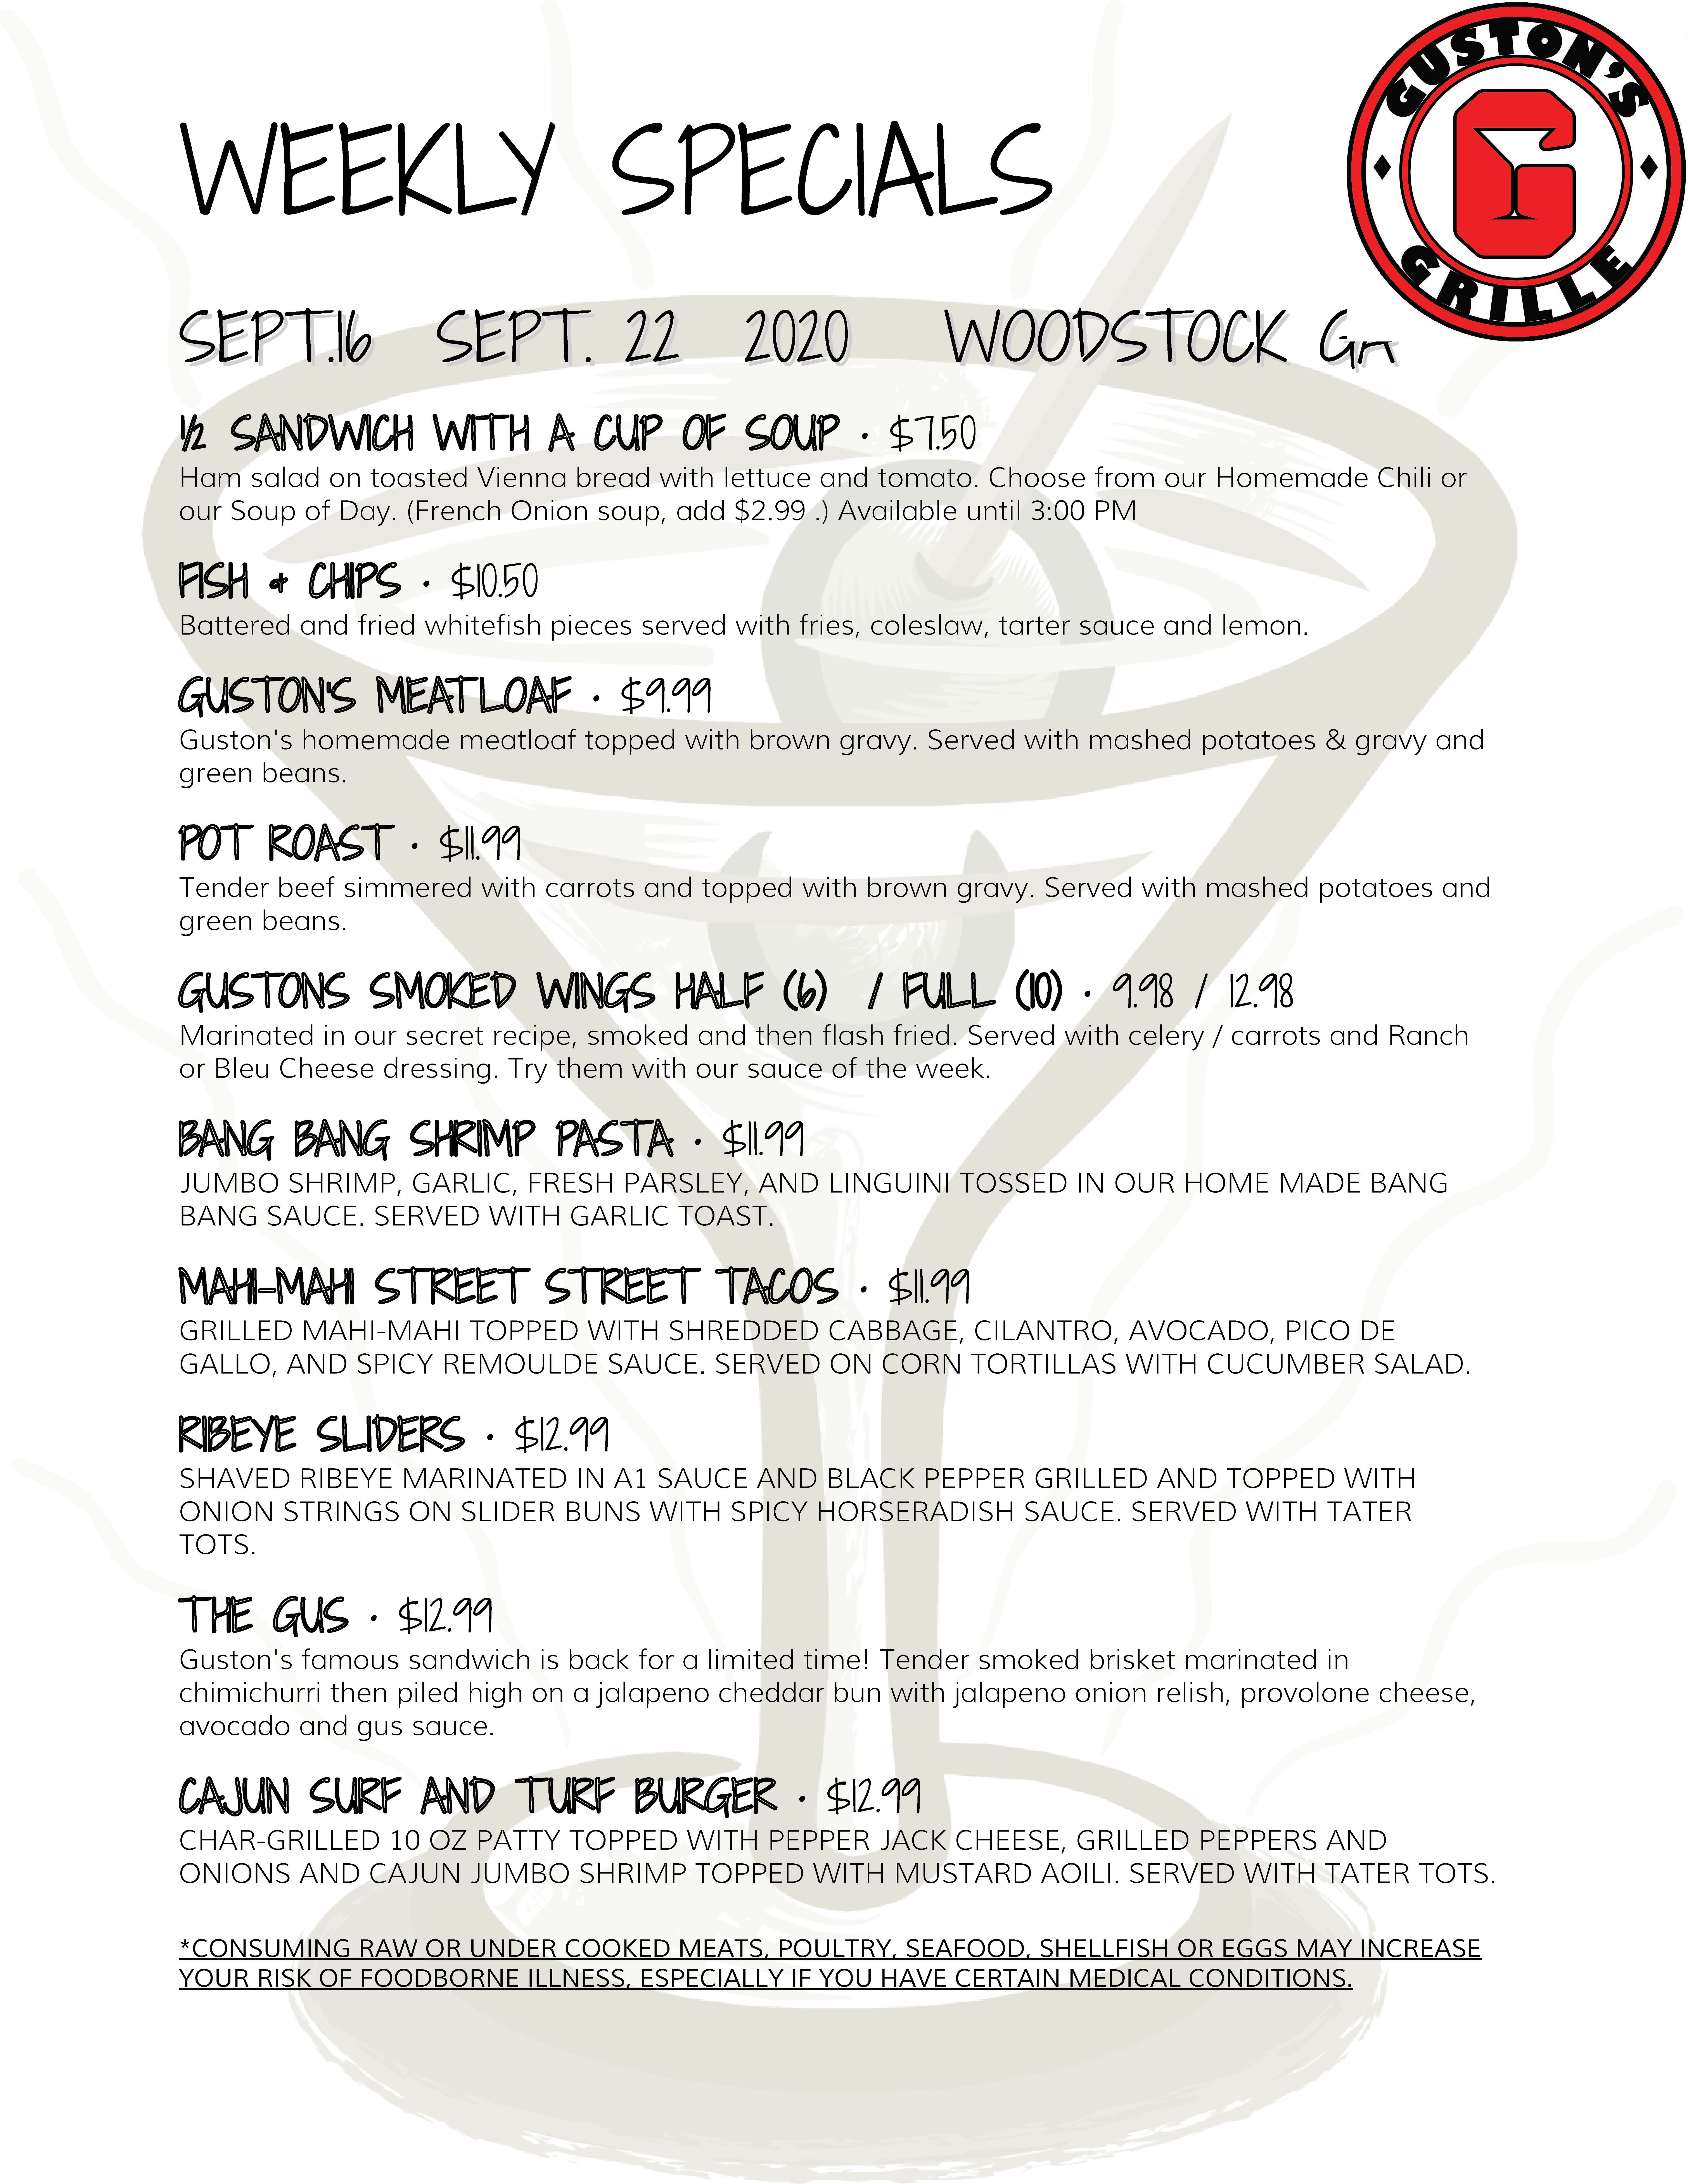 woodstock specials916_Page_1